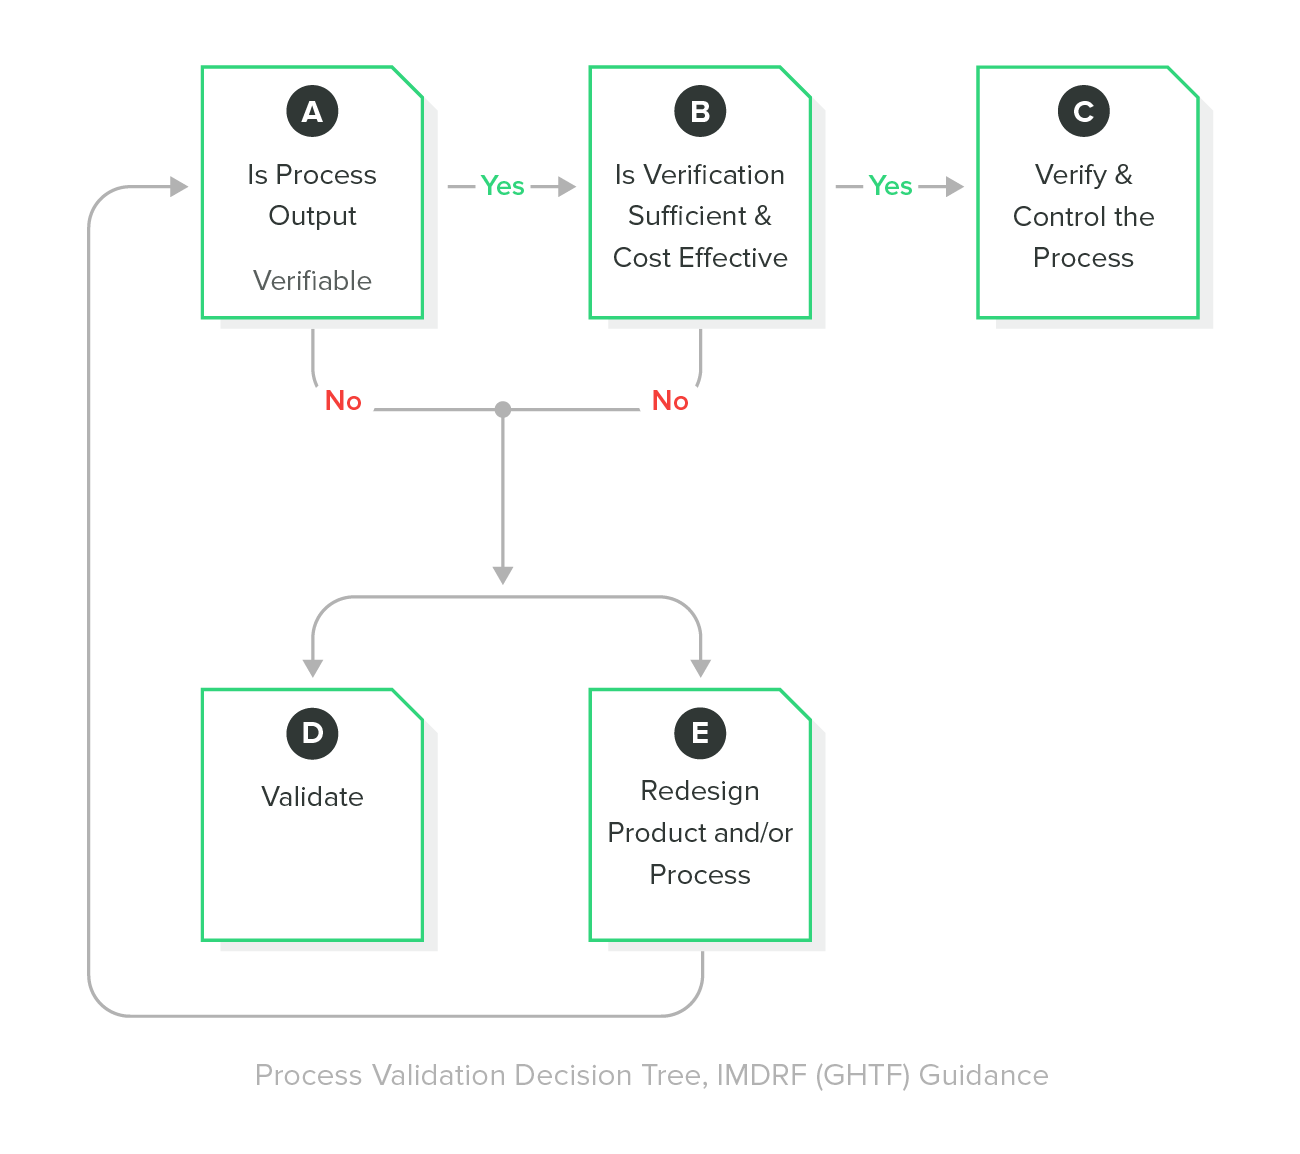 Process Validation Decision Tree